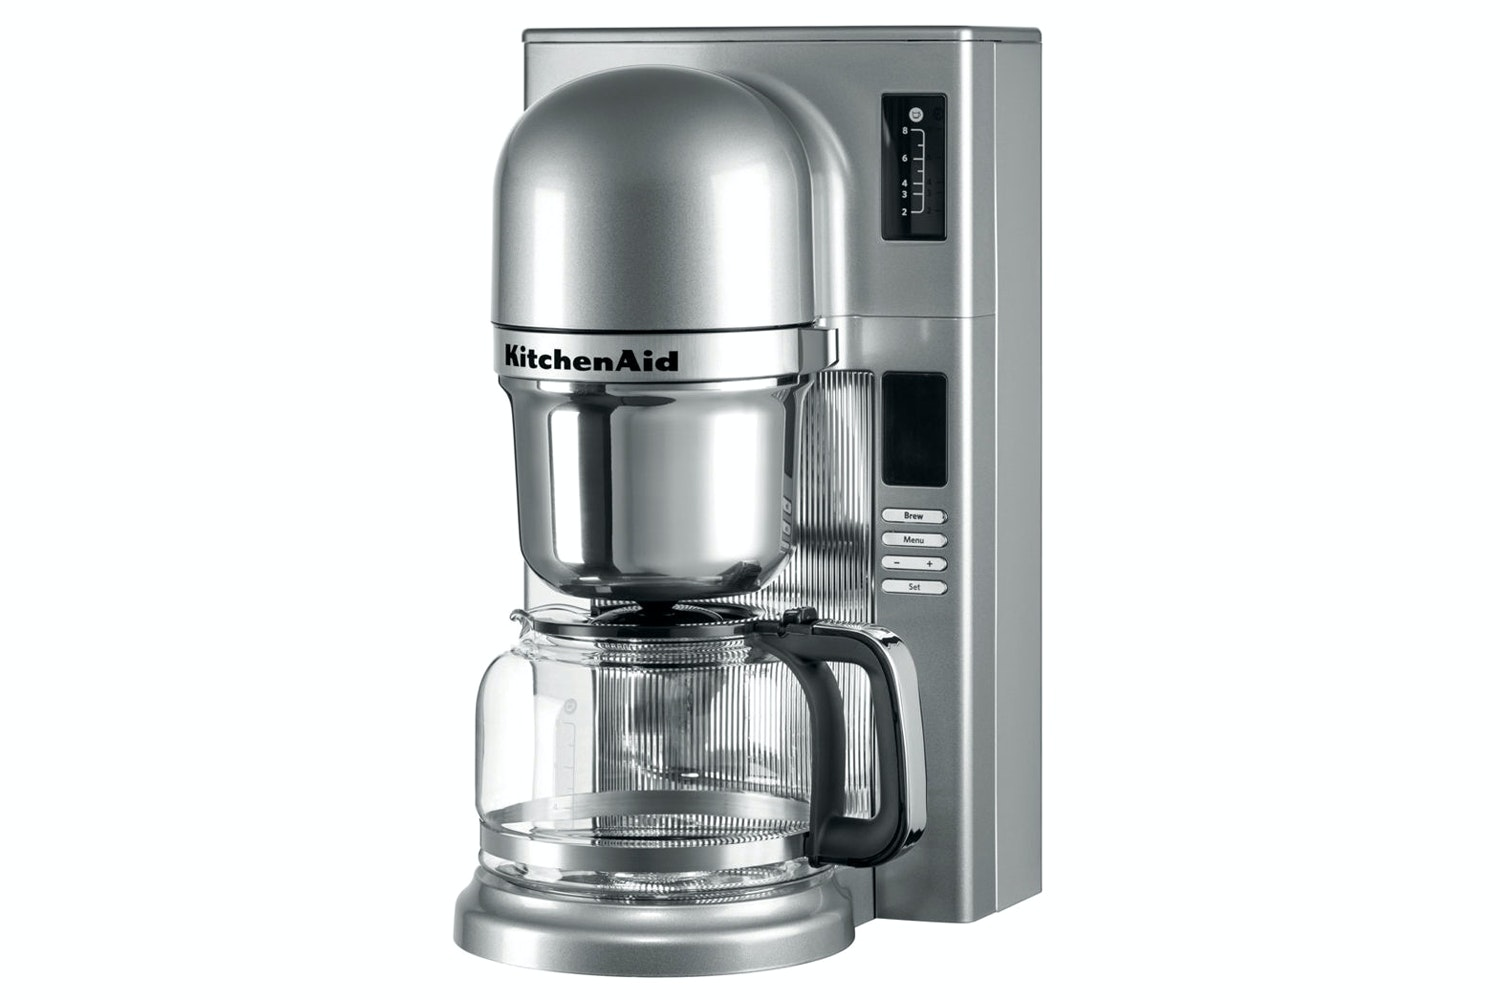 KitchenAid Pour Over Coffee Maker | 5KCM0802BCU